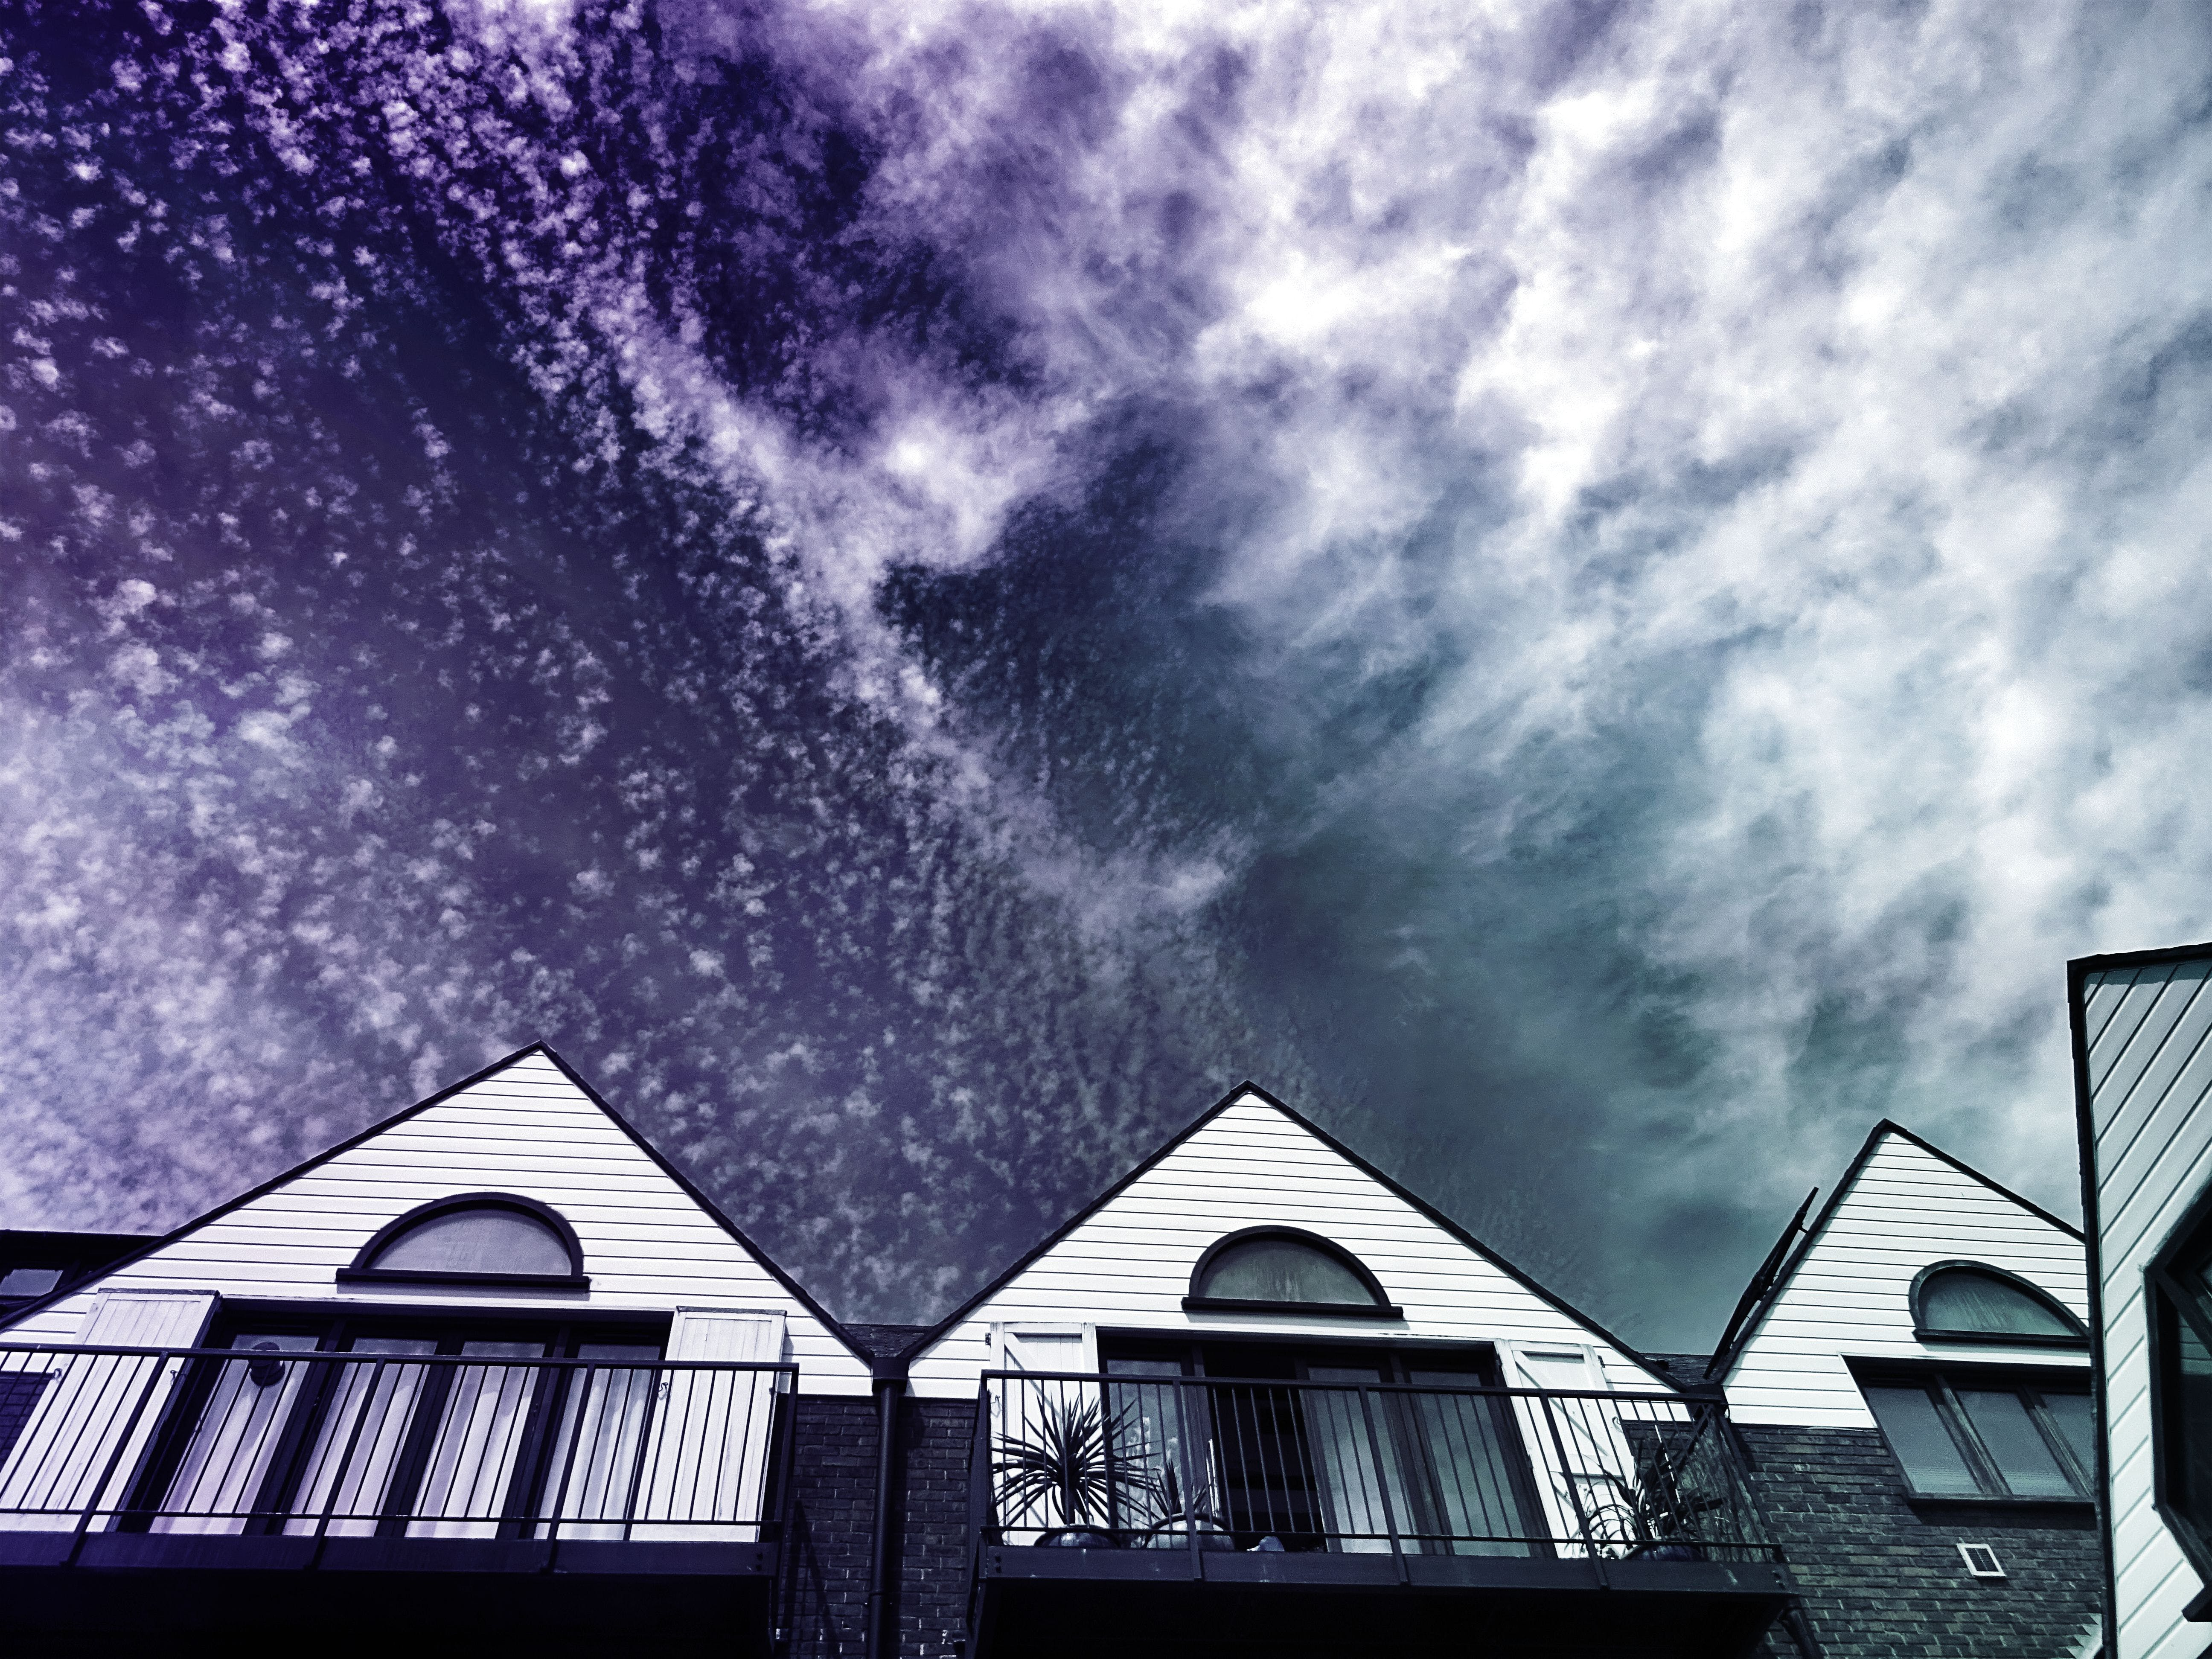 Free stock photo of sky, houses, dark, buildings